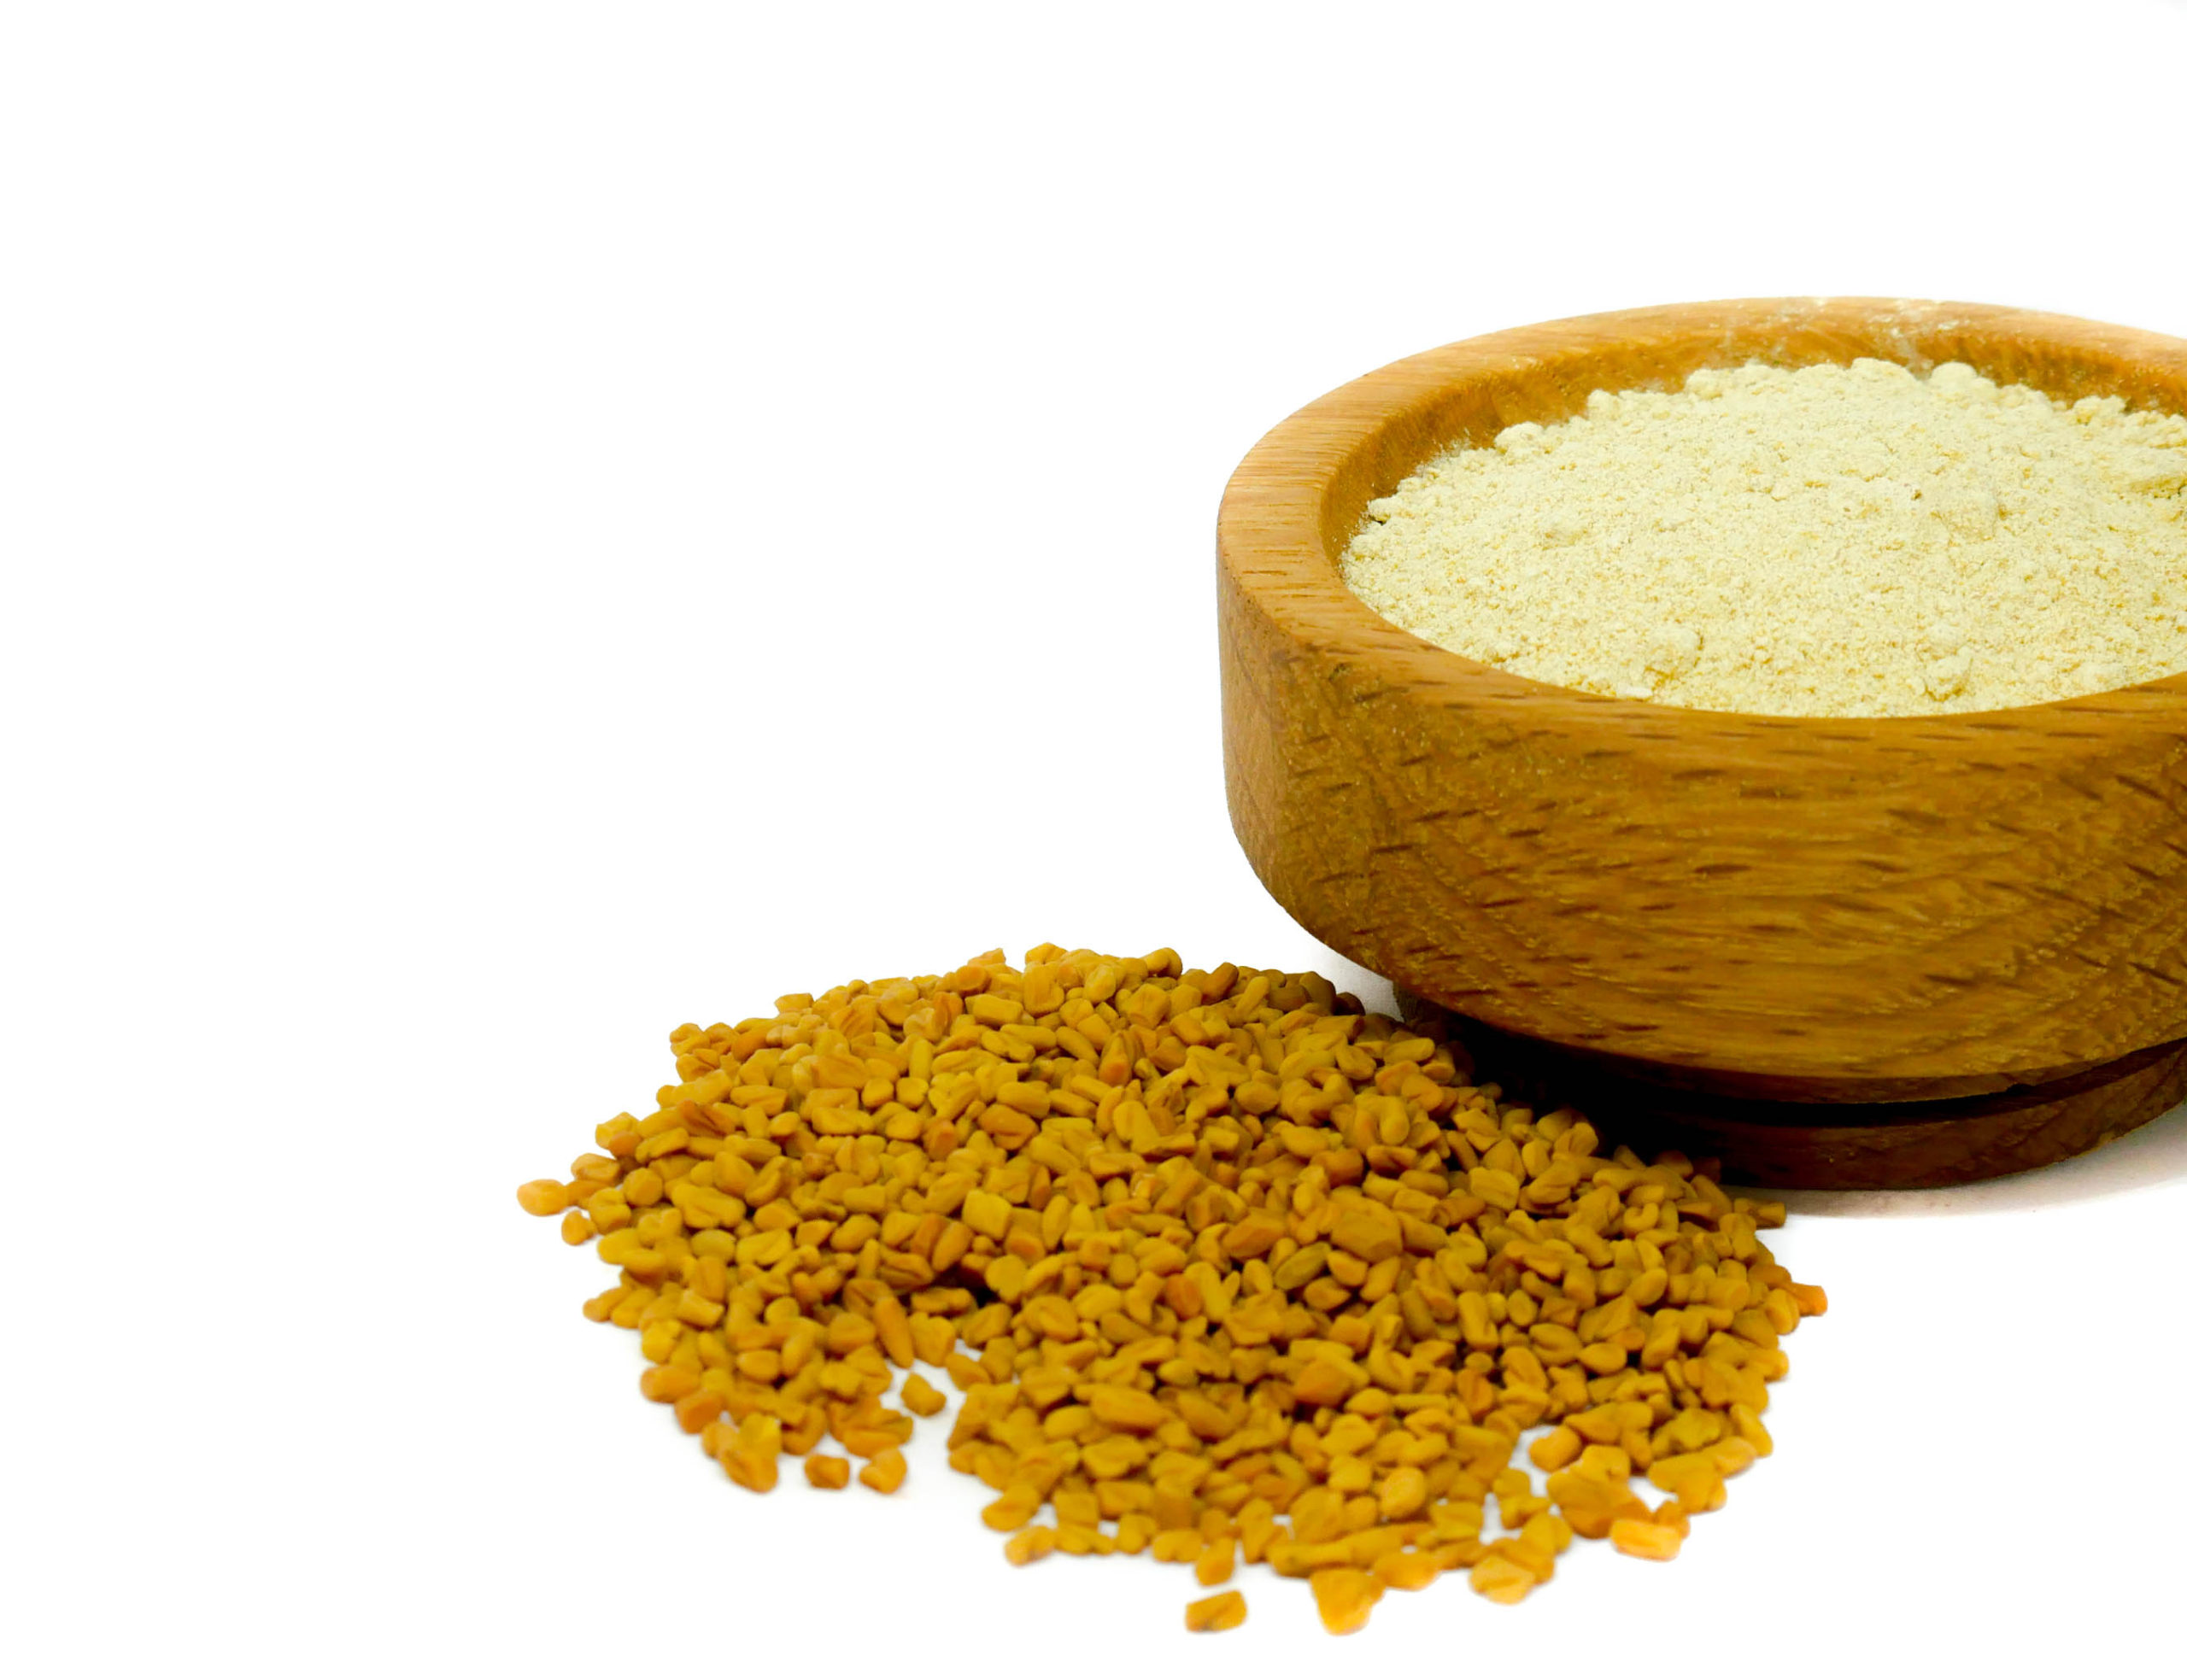 Whole and ground Fenugreek Seed from the Natural Spot